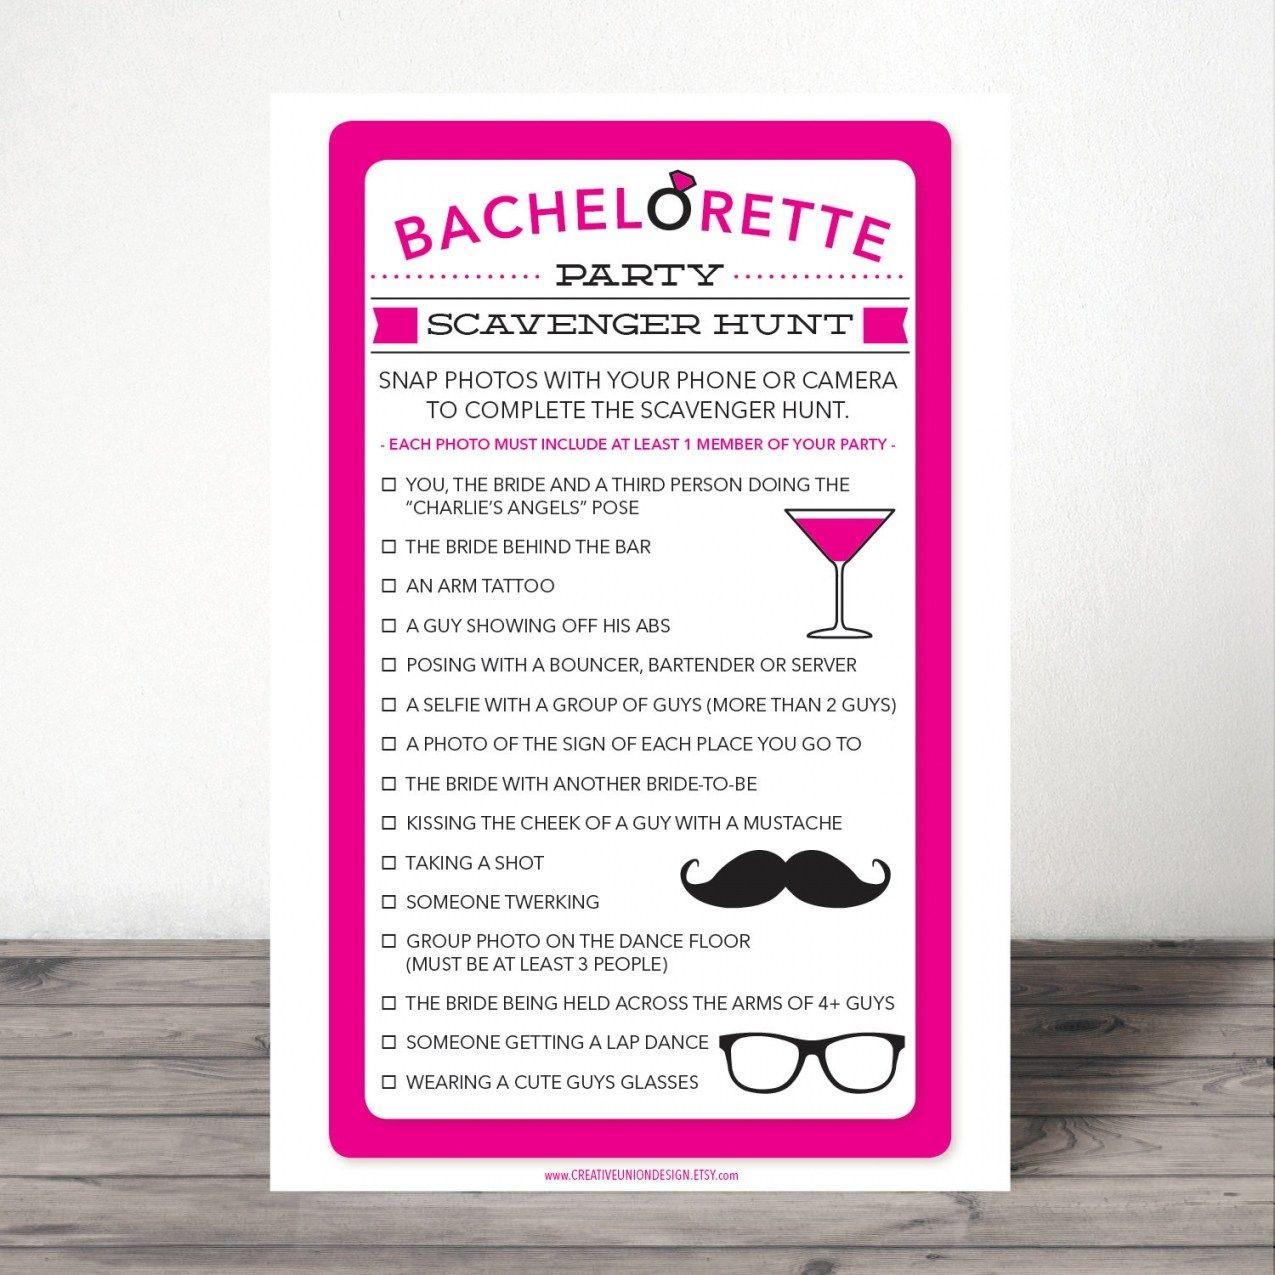 Bachelorette games at the bar images with regard to bachelor party bachelorette games at the bar images with regard to bachelor party games monicamarmolfo Choice Image